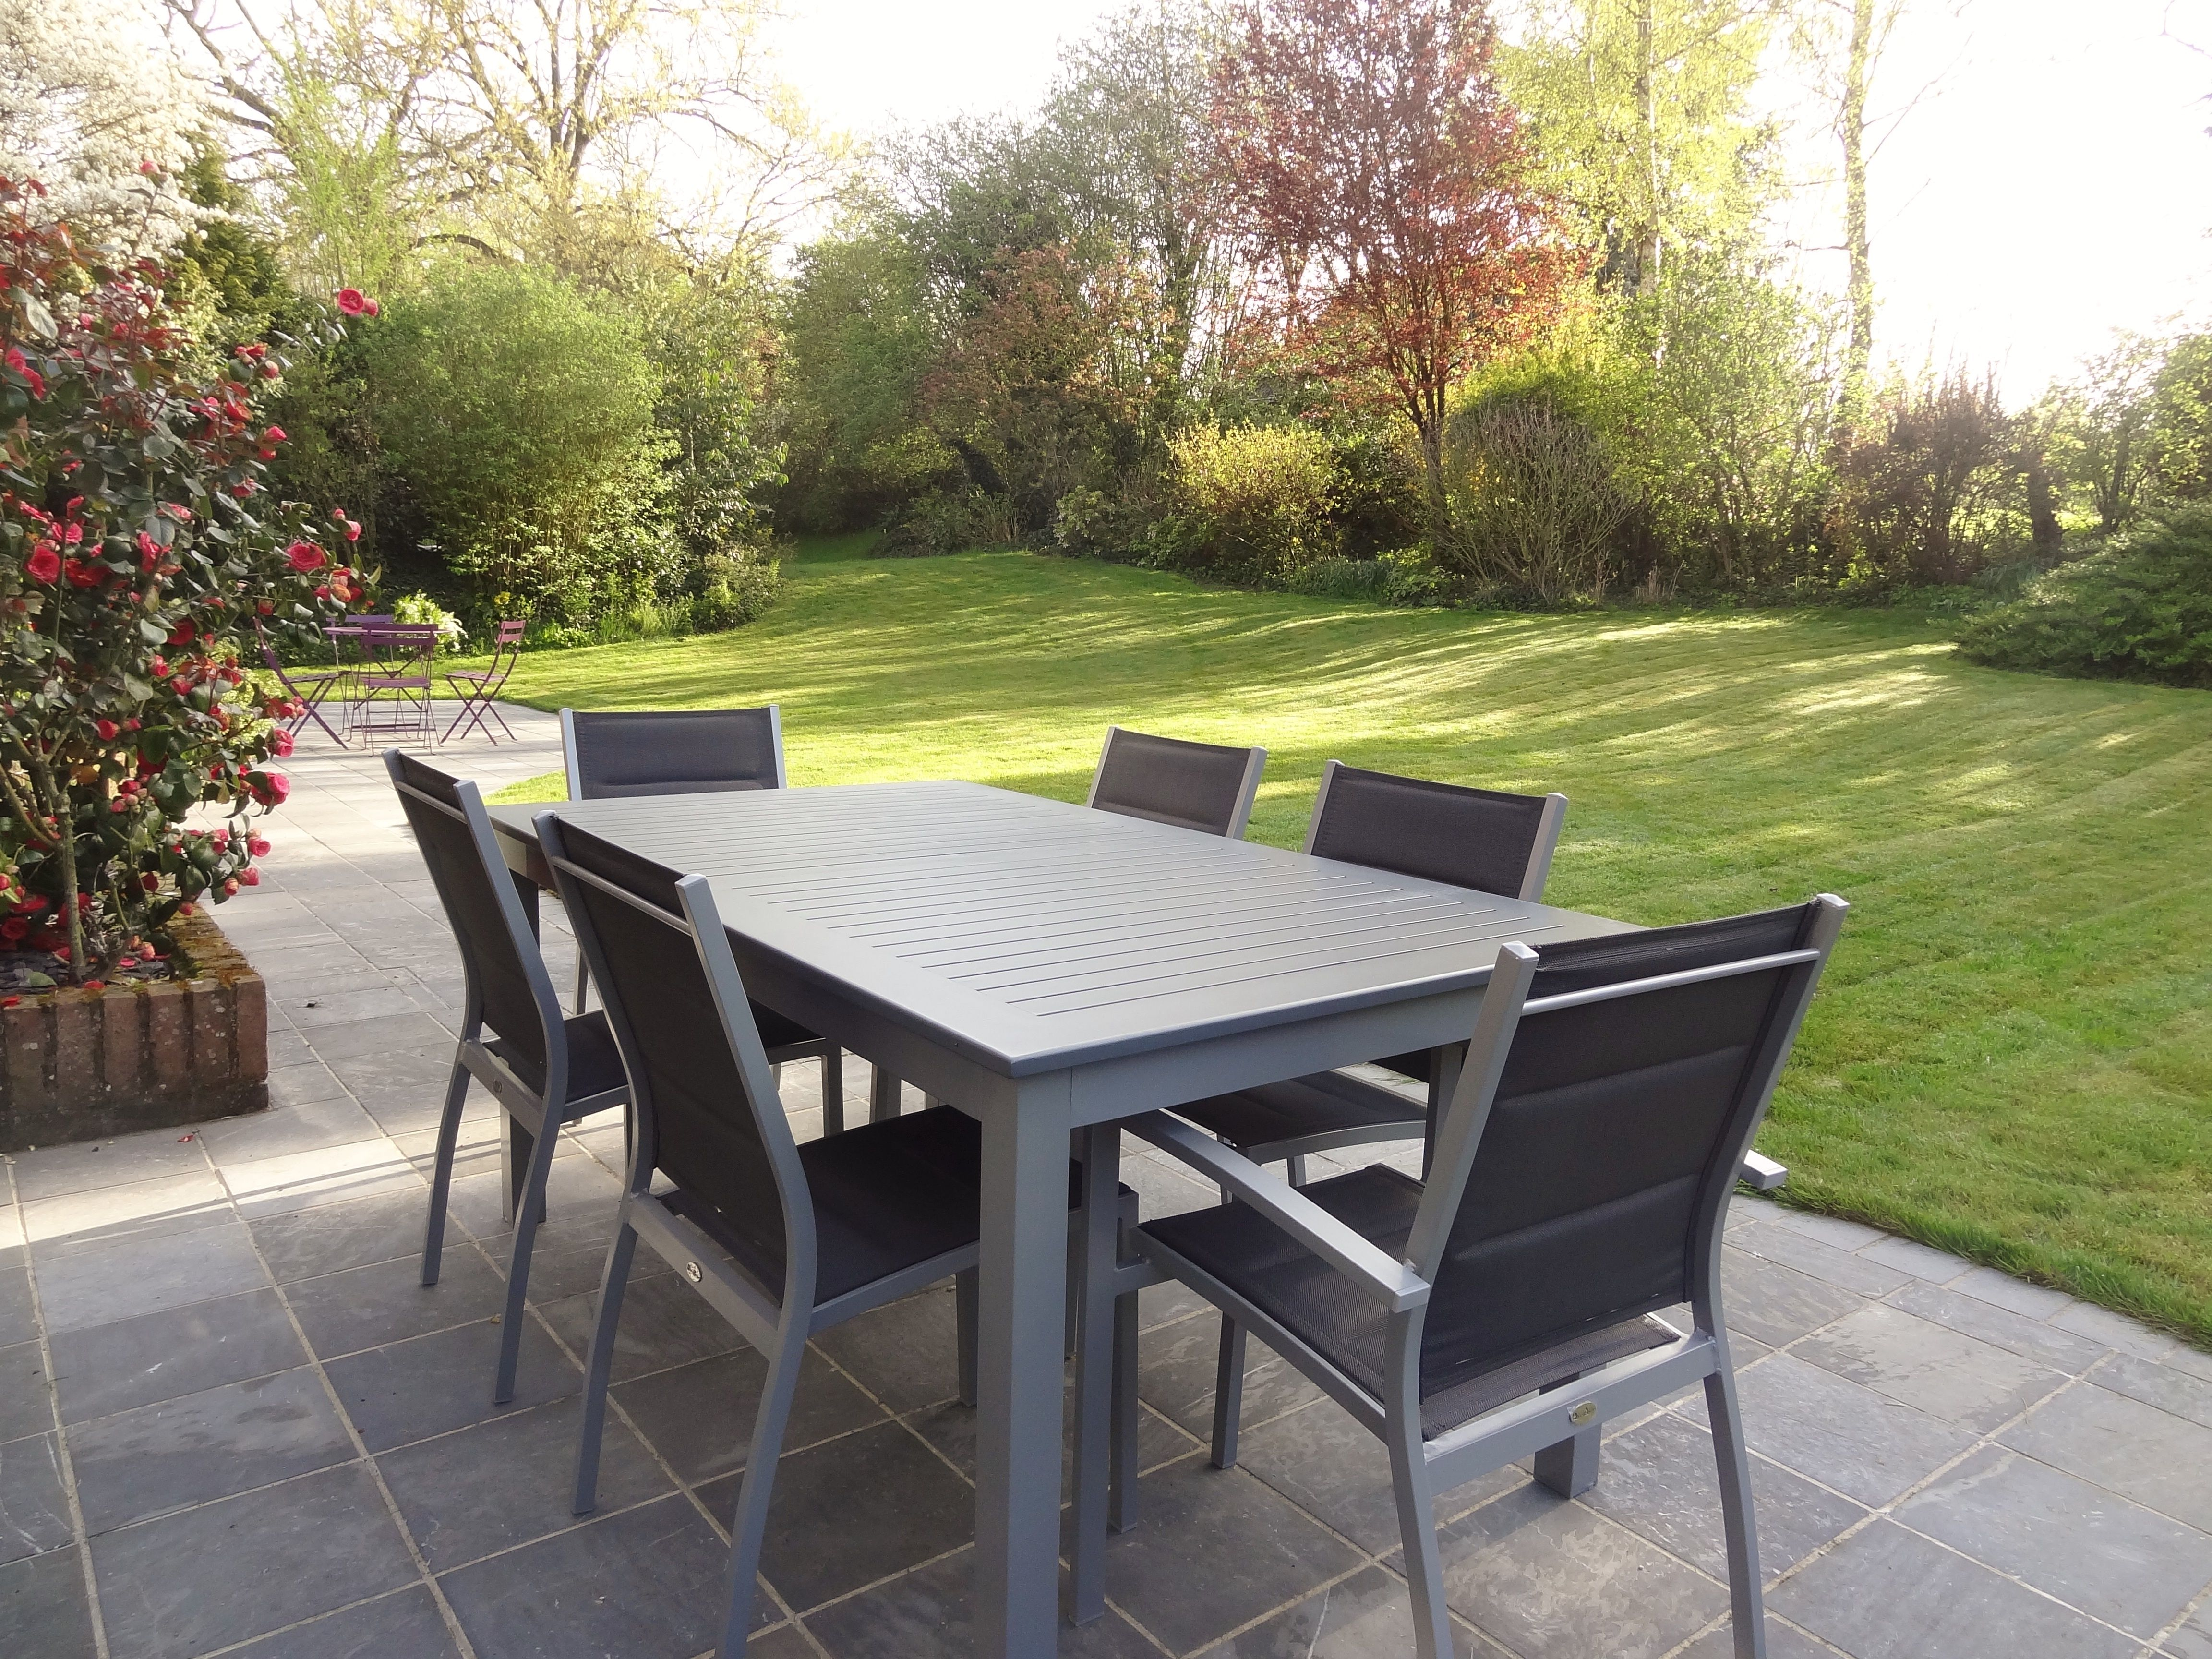 Salon De Jardin Table Extensible Chicago 210 Gris Table En Aluminium 150 210cm Avec Rallonge Et 6 Assises En Textilene Table De Jardin Mobilier Jardin Table Salon De Jardin